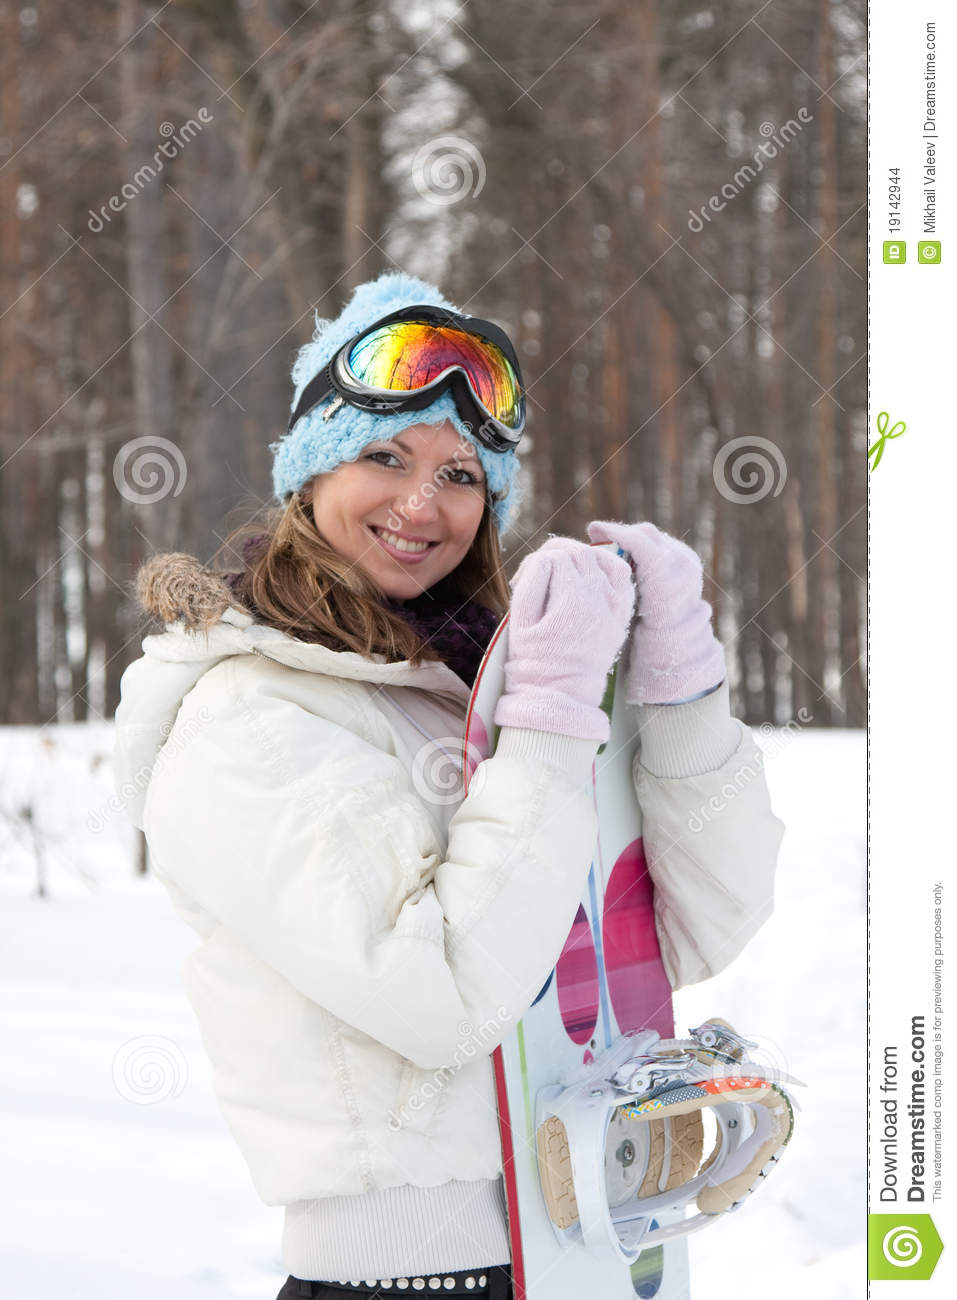 89eeeb5379 Young woman with snowboard stock photo. Image of pretty - 19142944